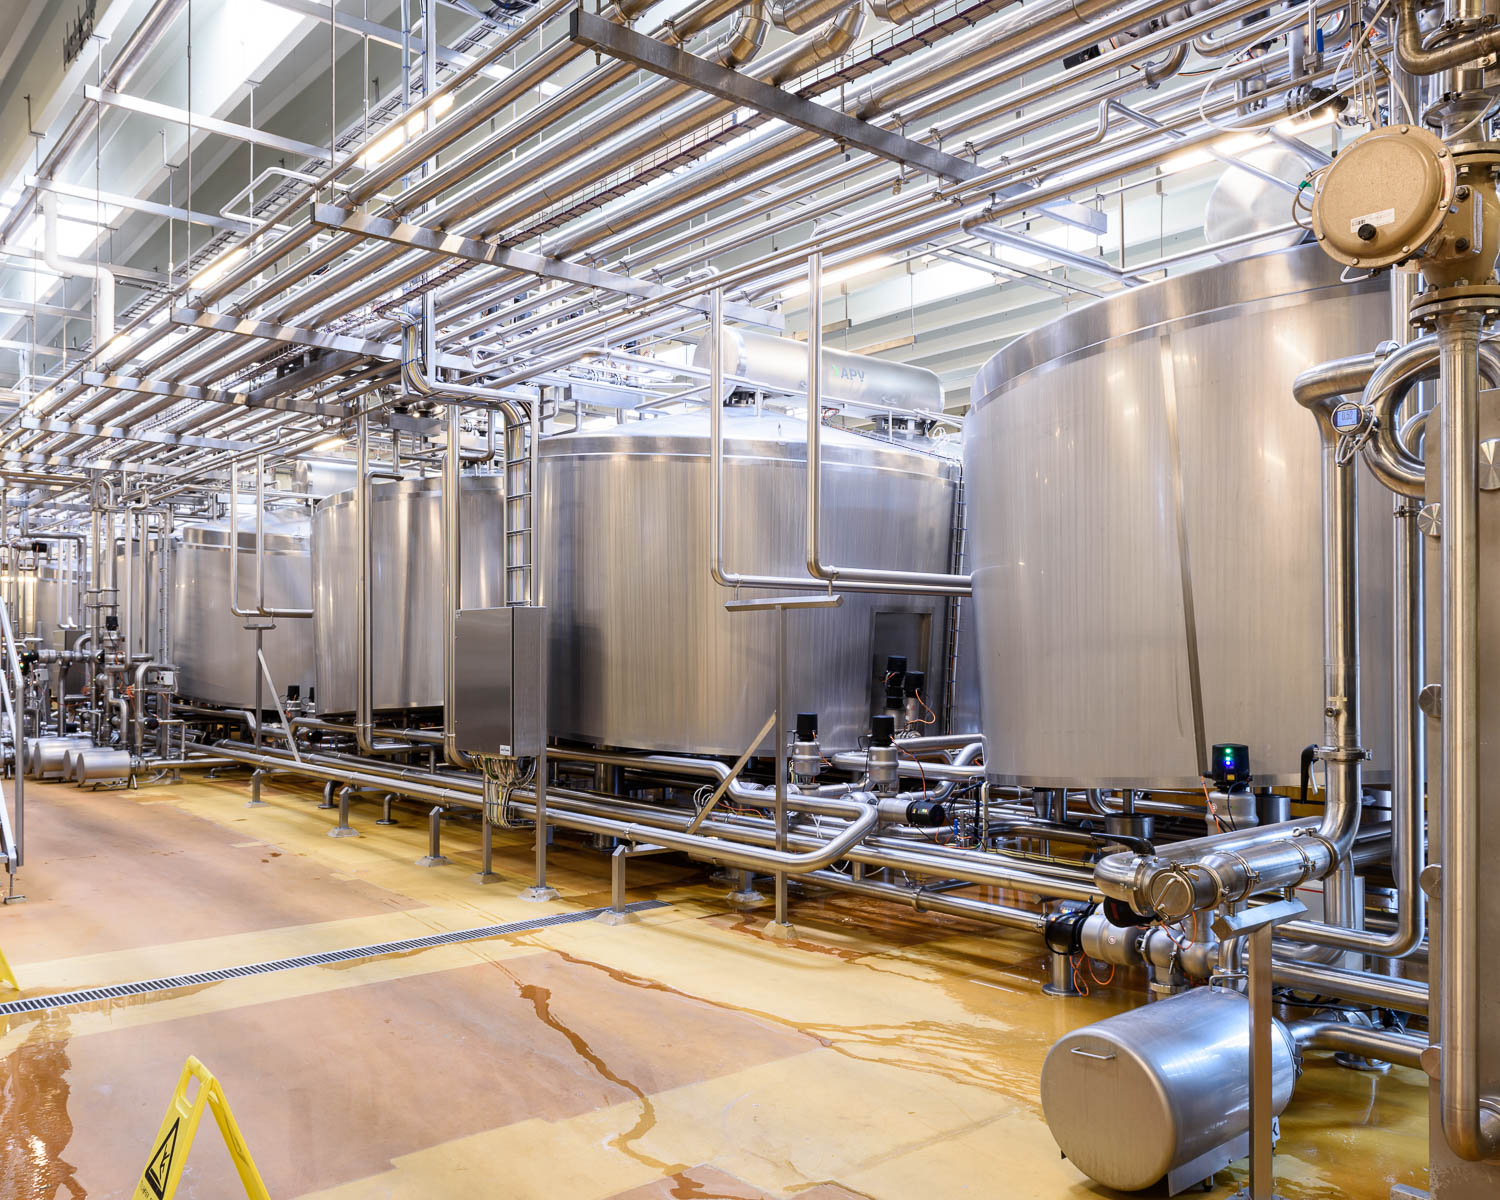 The milk is agitated in large tanks, separating the curds and whey